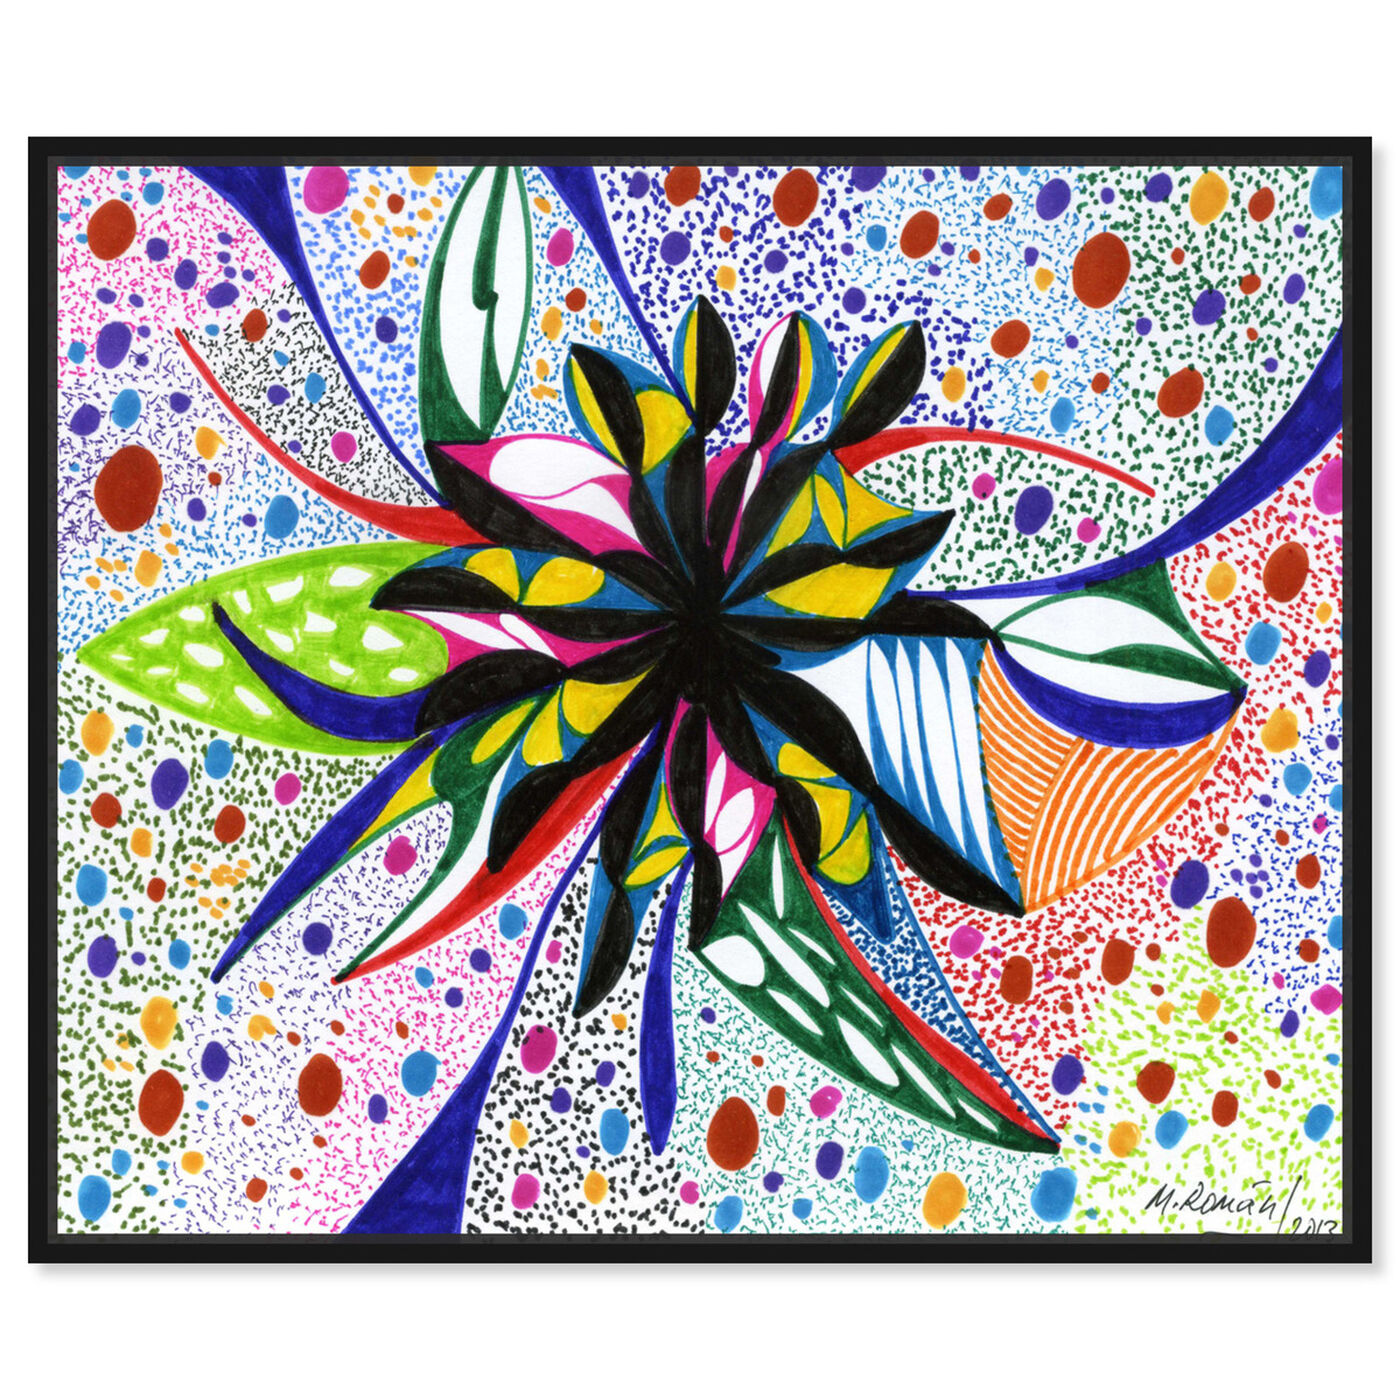 Front view of Bromeliad featuring abstract and flowers art.